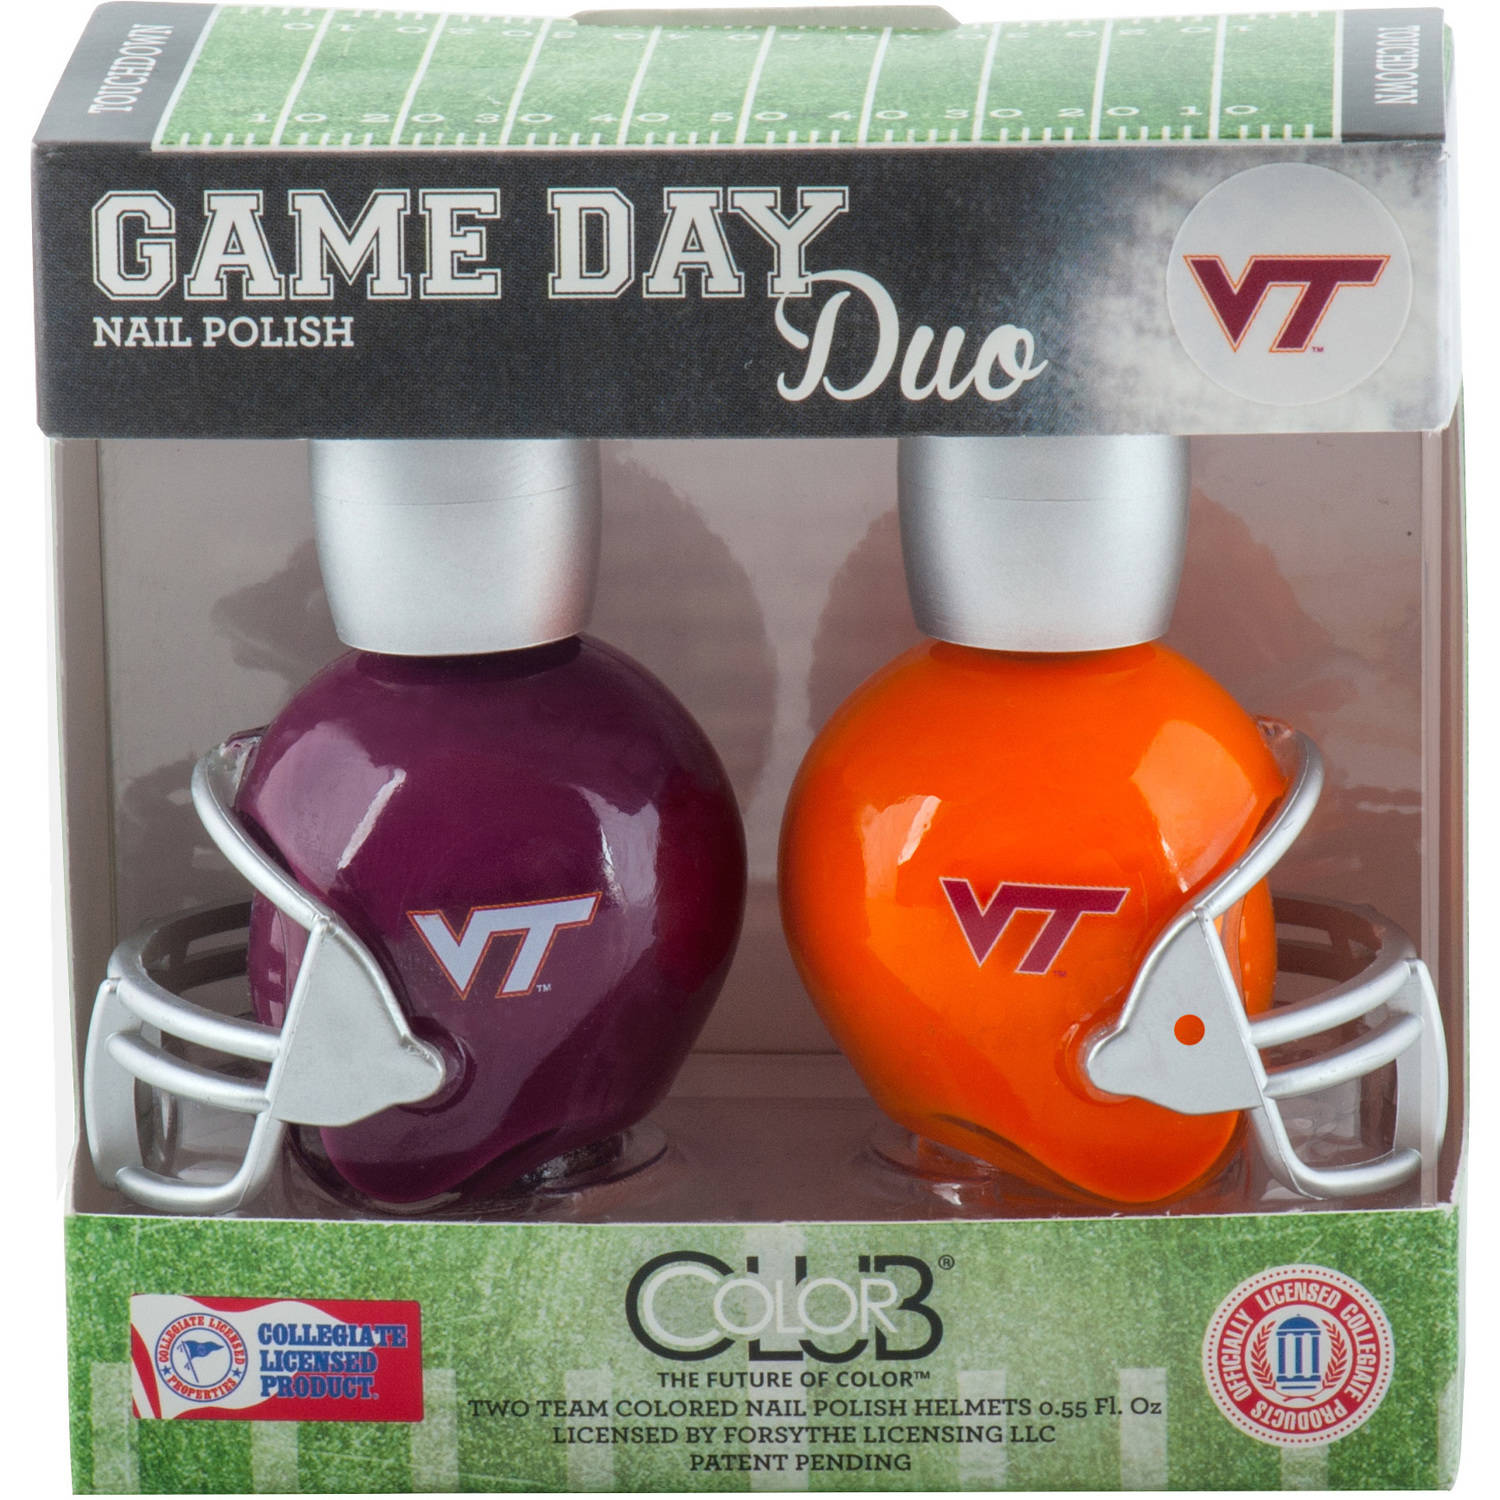 Color Club Polish Game Day Duo Pack Nail Lacquer, Virginia Tech, 0.55 fl oz